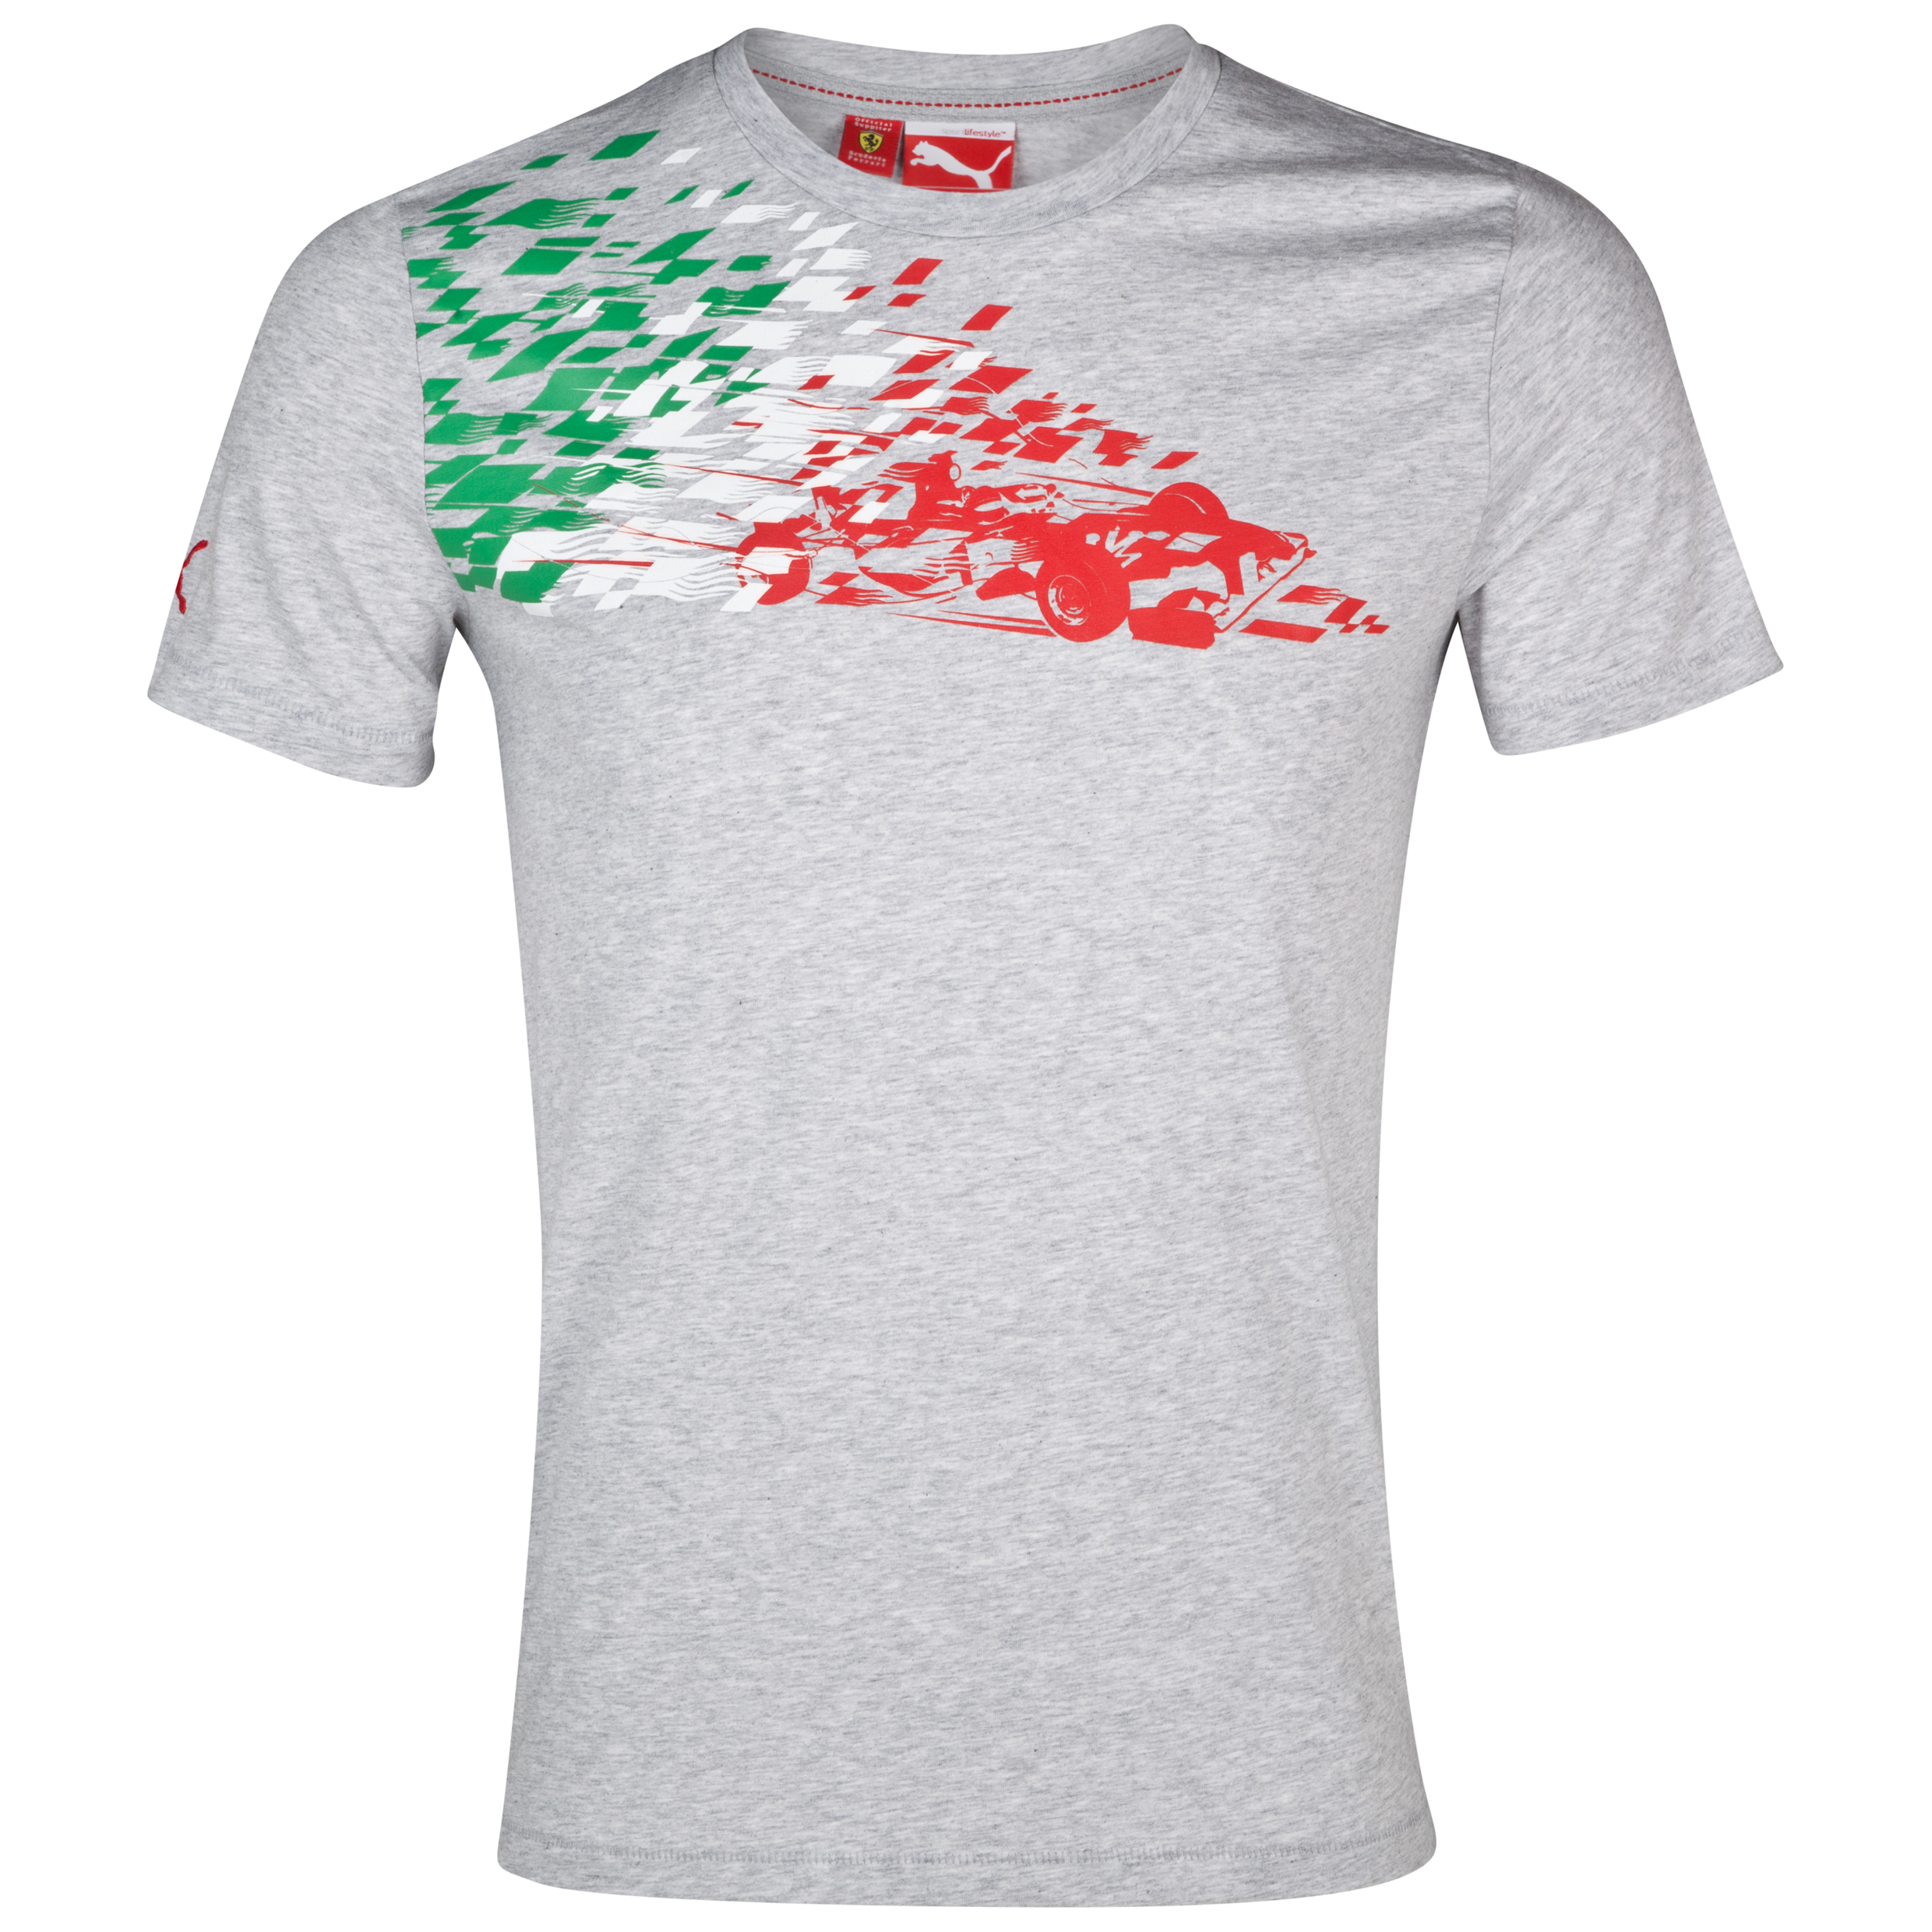 Scuderia Ferrari Graphic T-Shirt - Grey